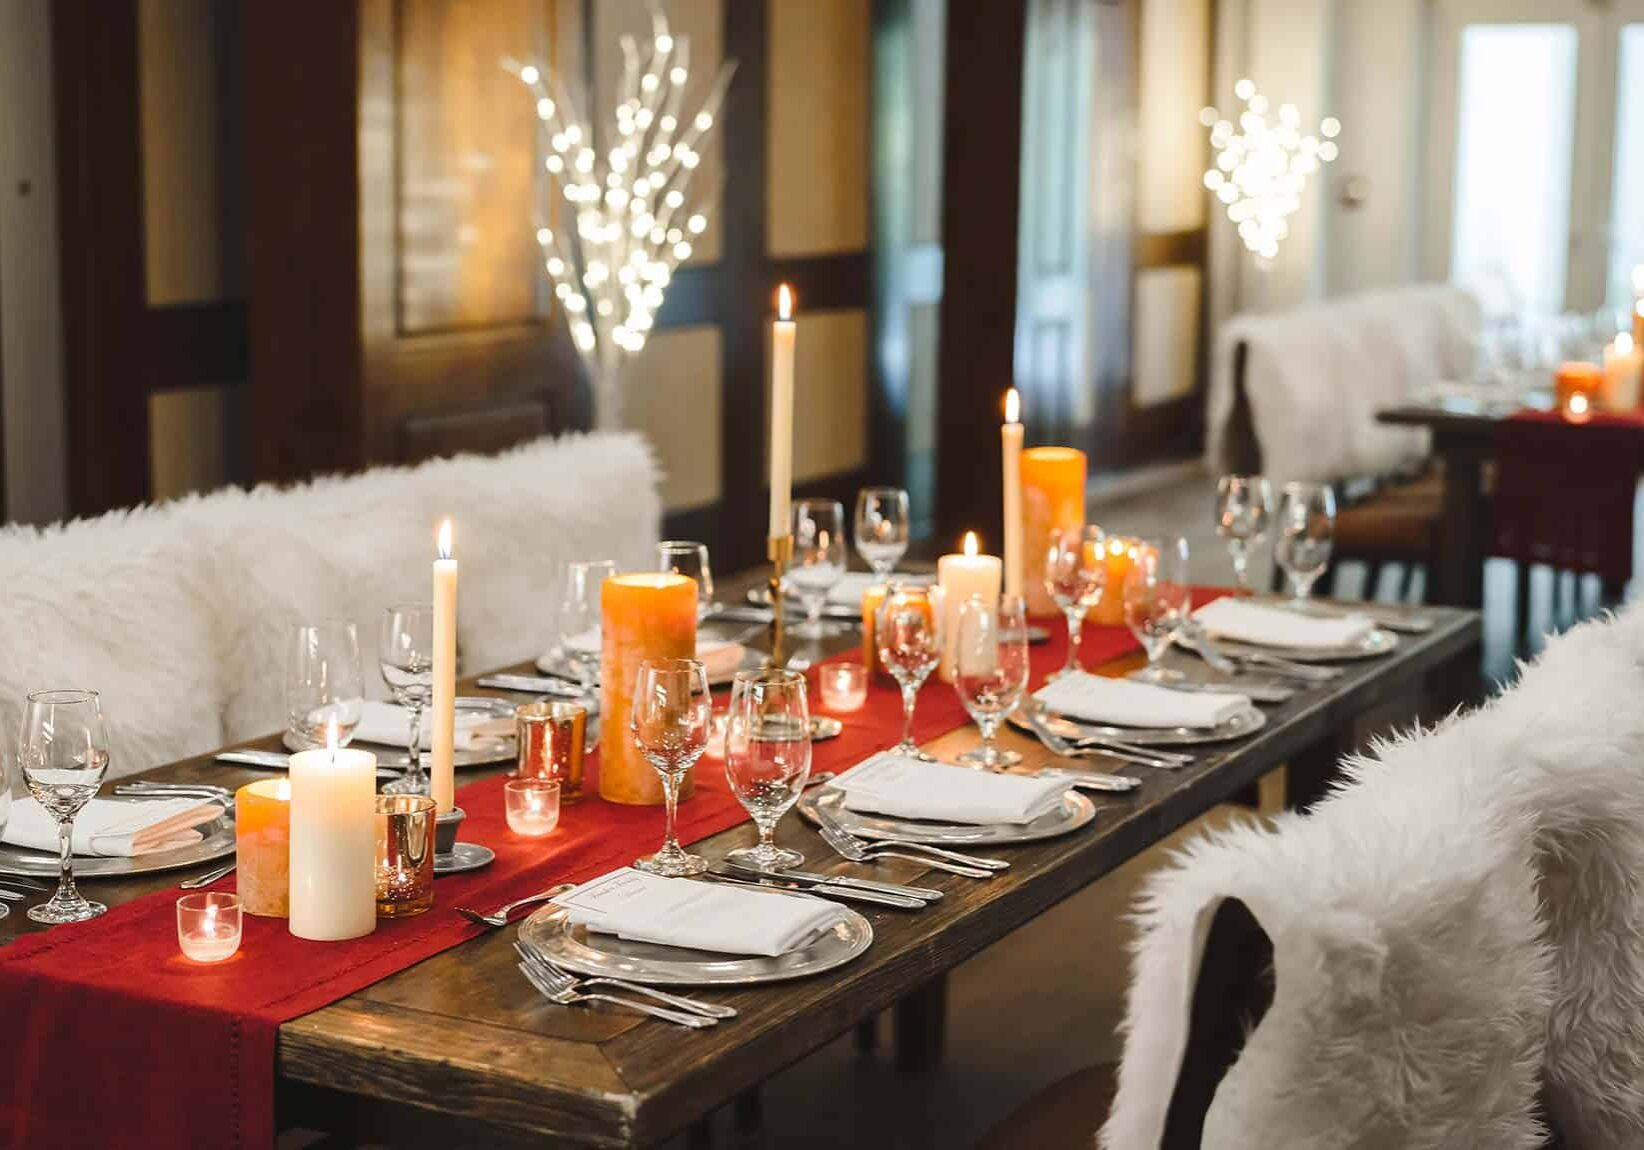 Allgau restaurant tables with placesettings and candles